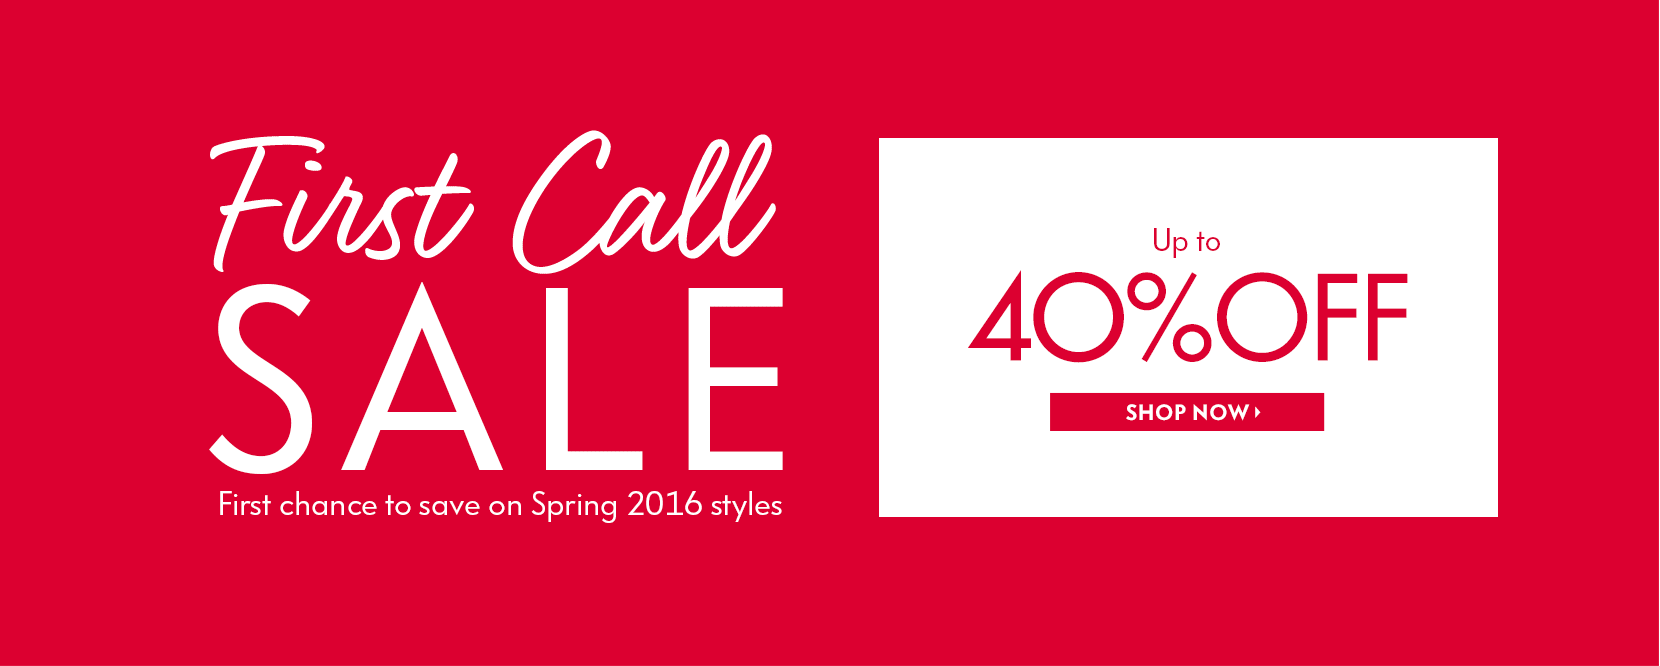 First Call Sale up to 40% off. Shop first chance to save on spring 2016 styles